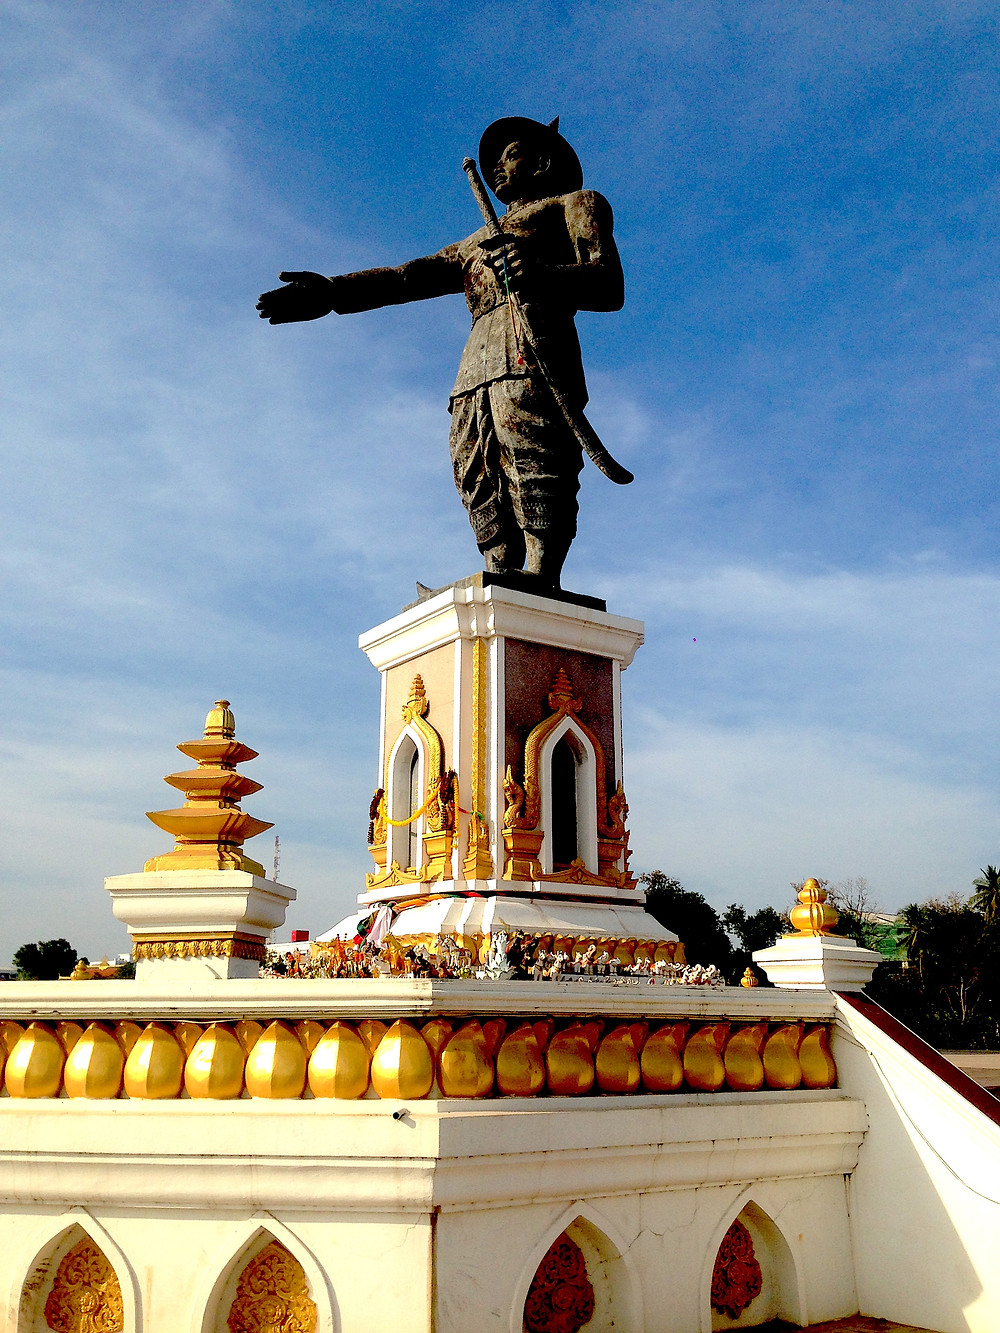 King Chao Anouvong statue, Vientiane